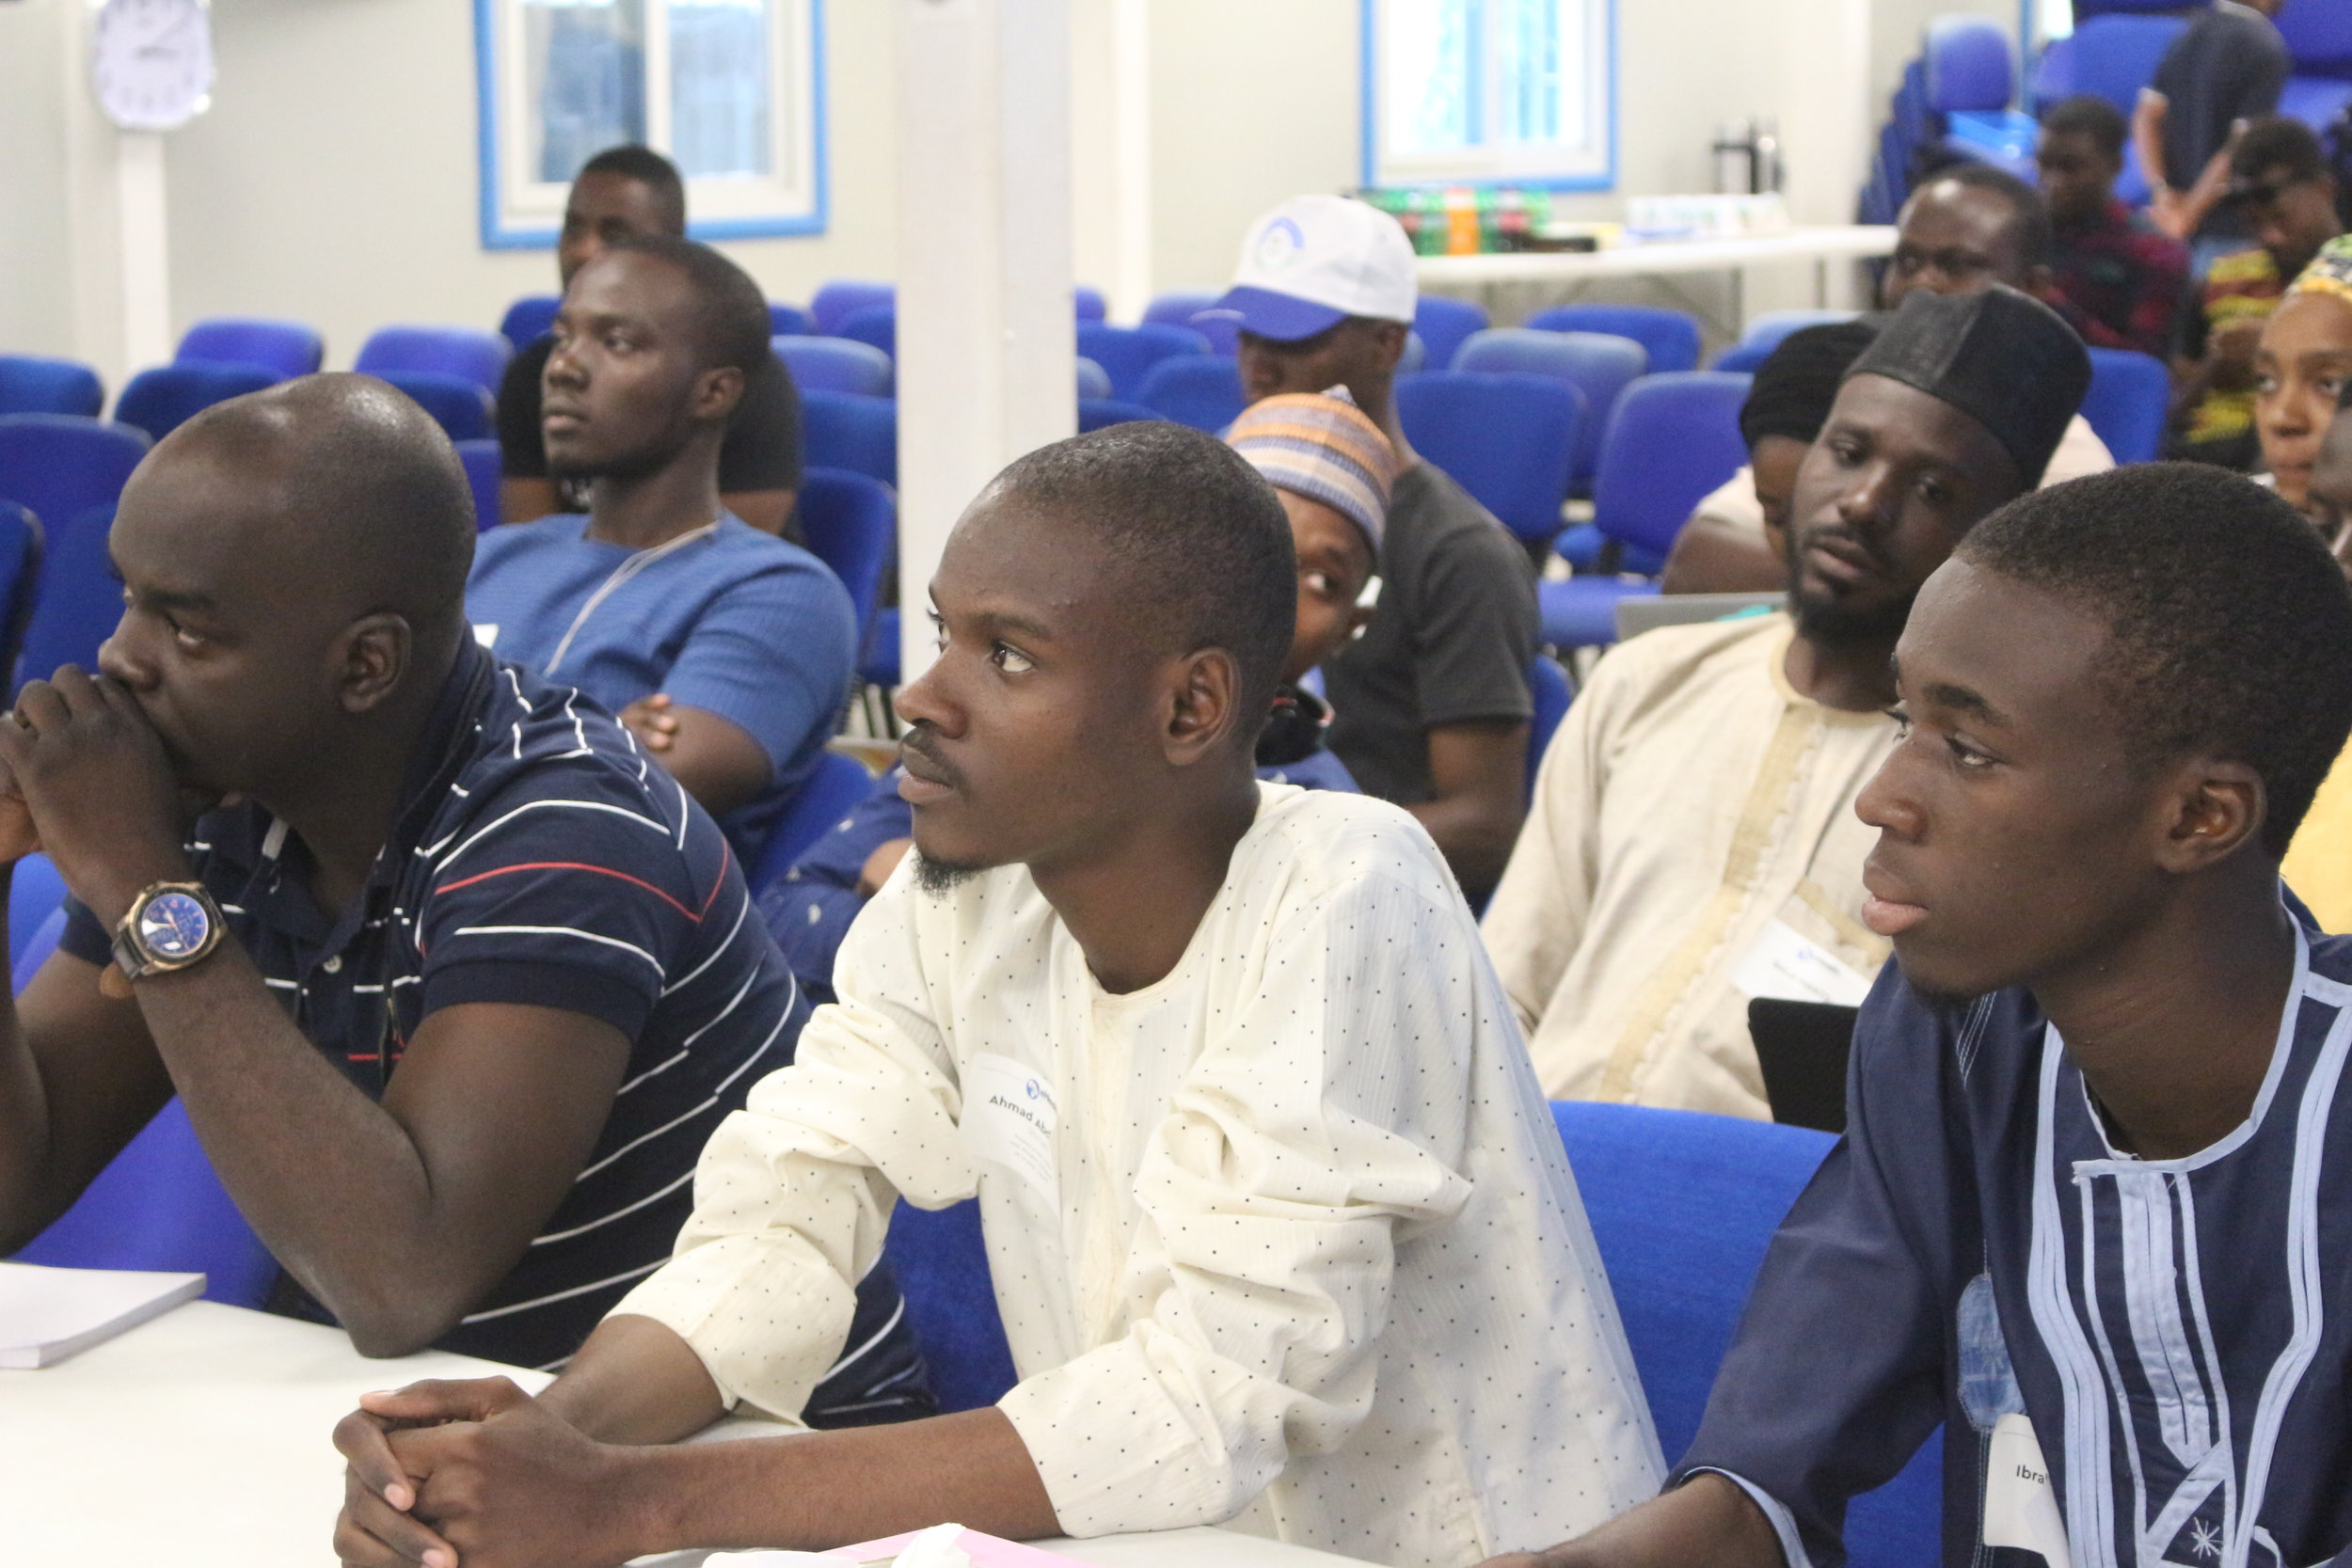 A cross section of the audience listening with rapt attention